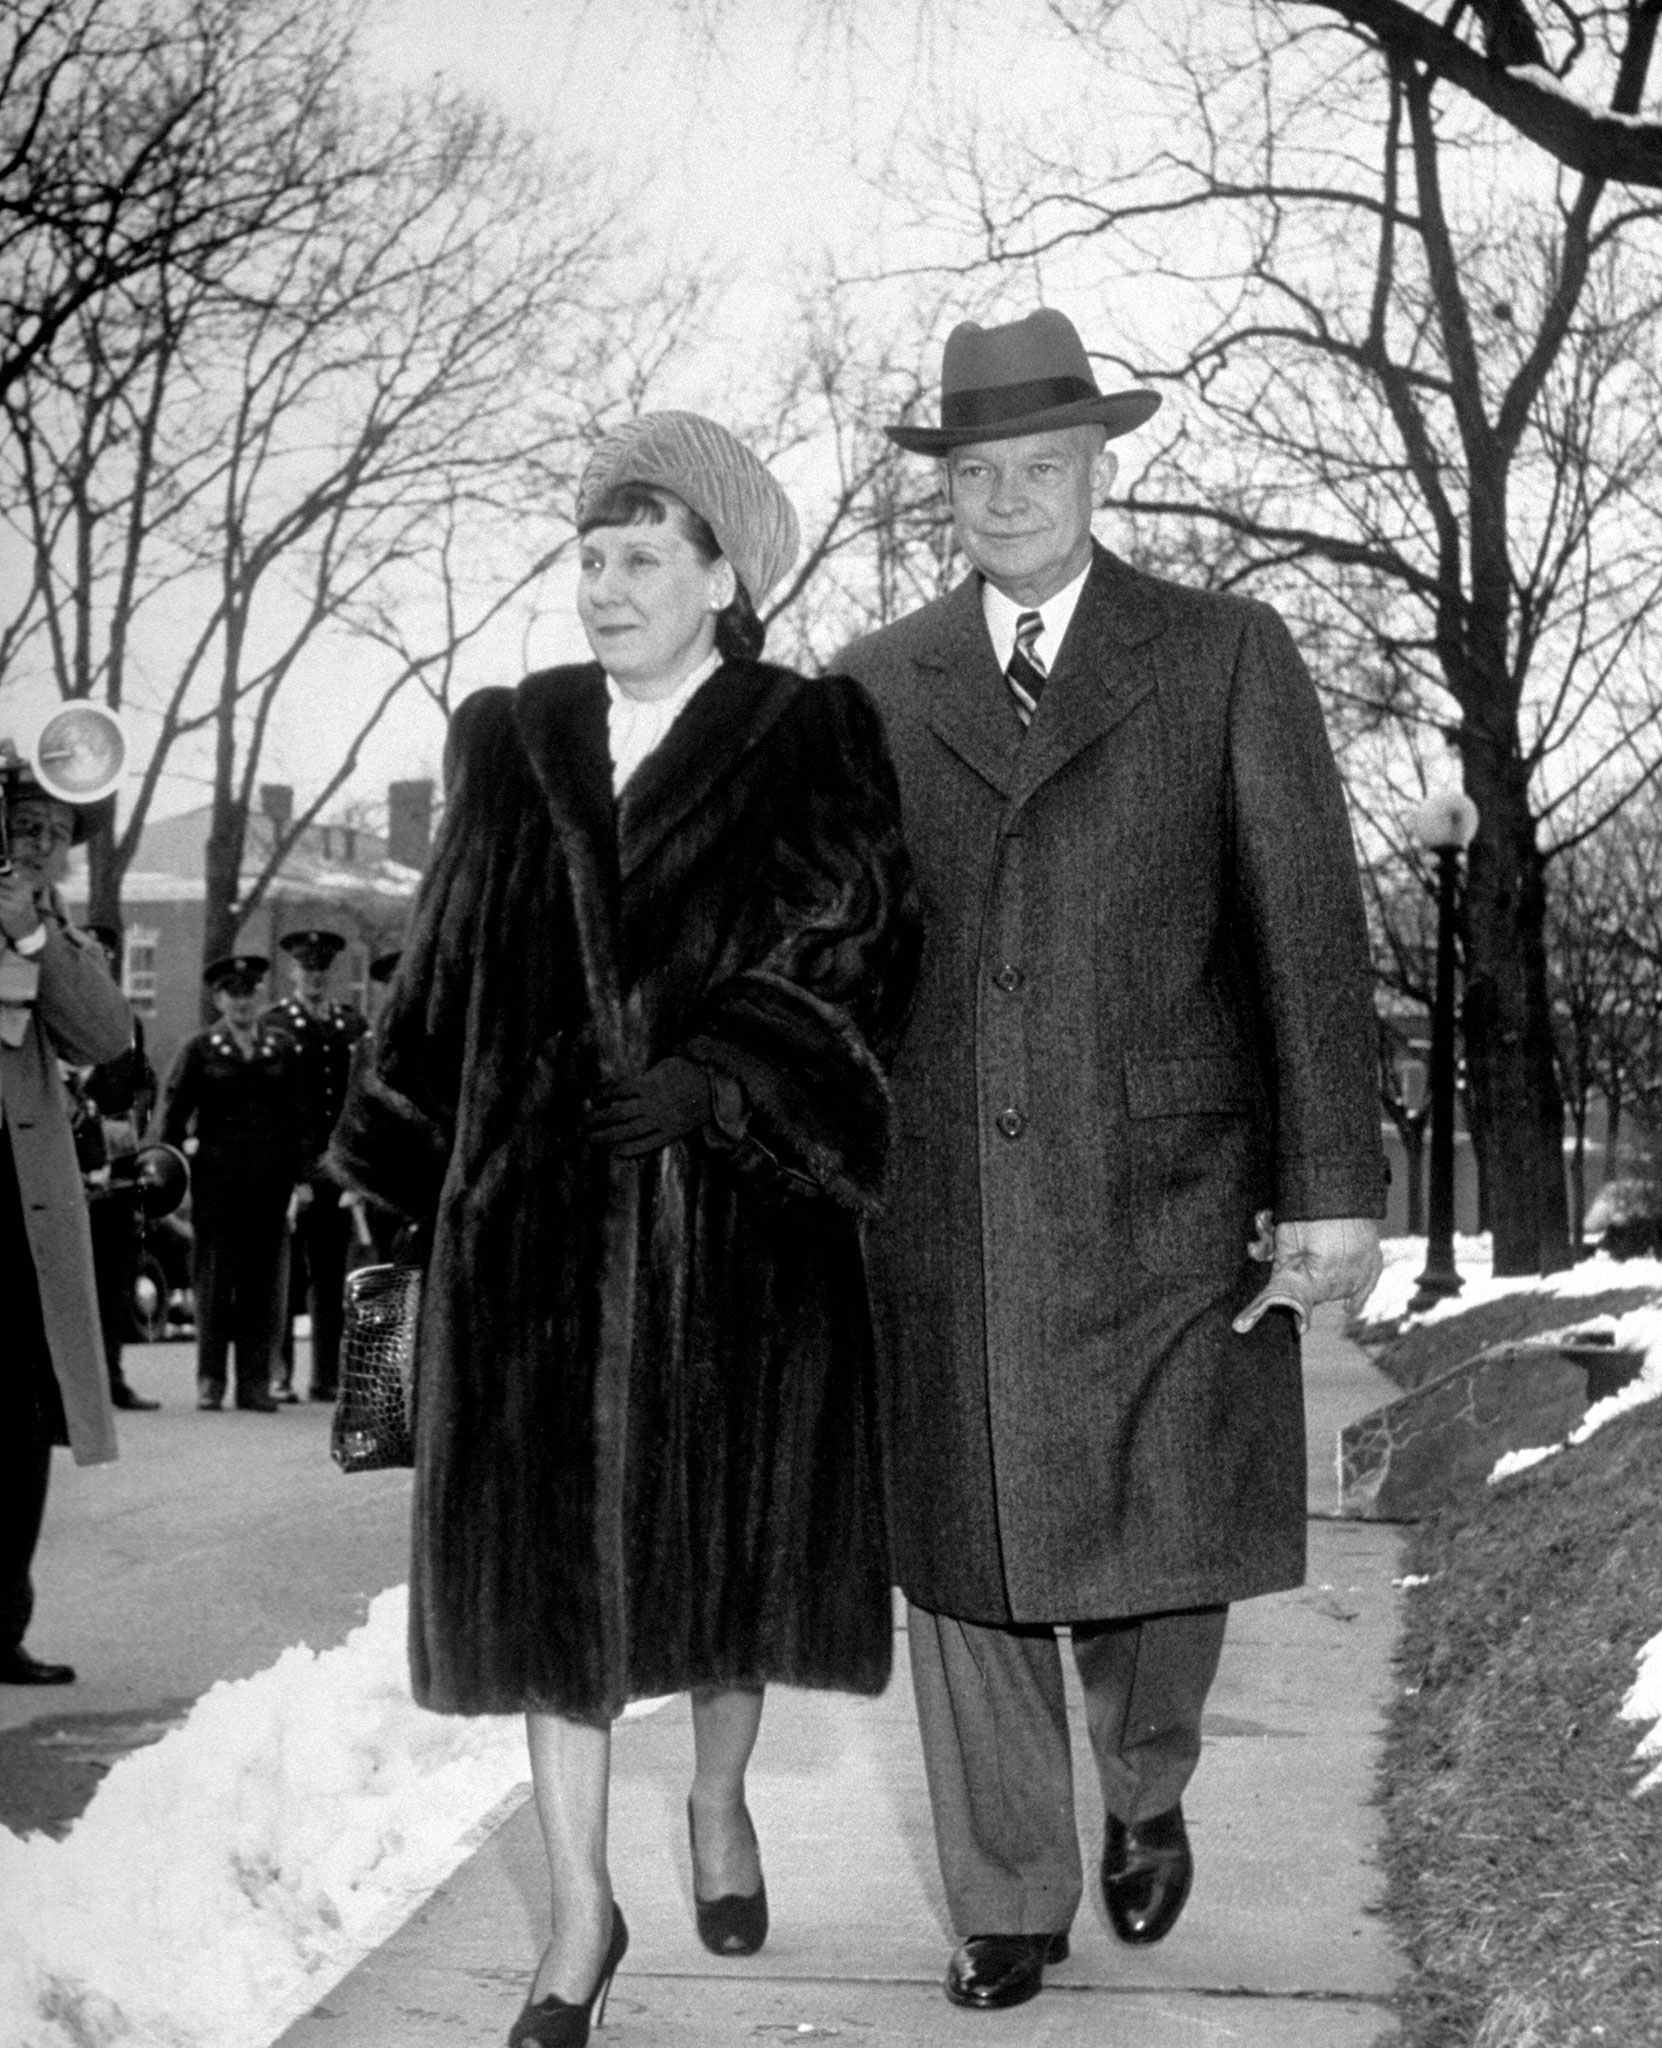 General Dwight D. Eisenhower walking with his wife Mamie, 1948.